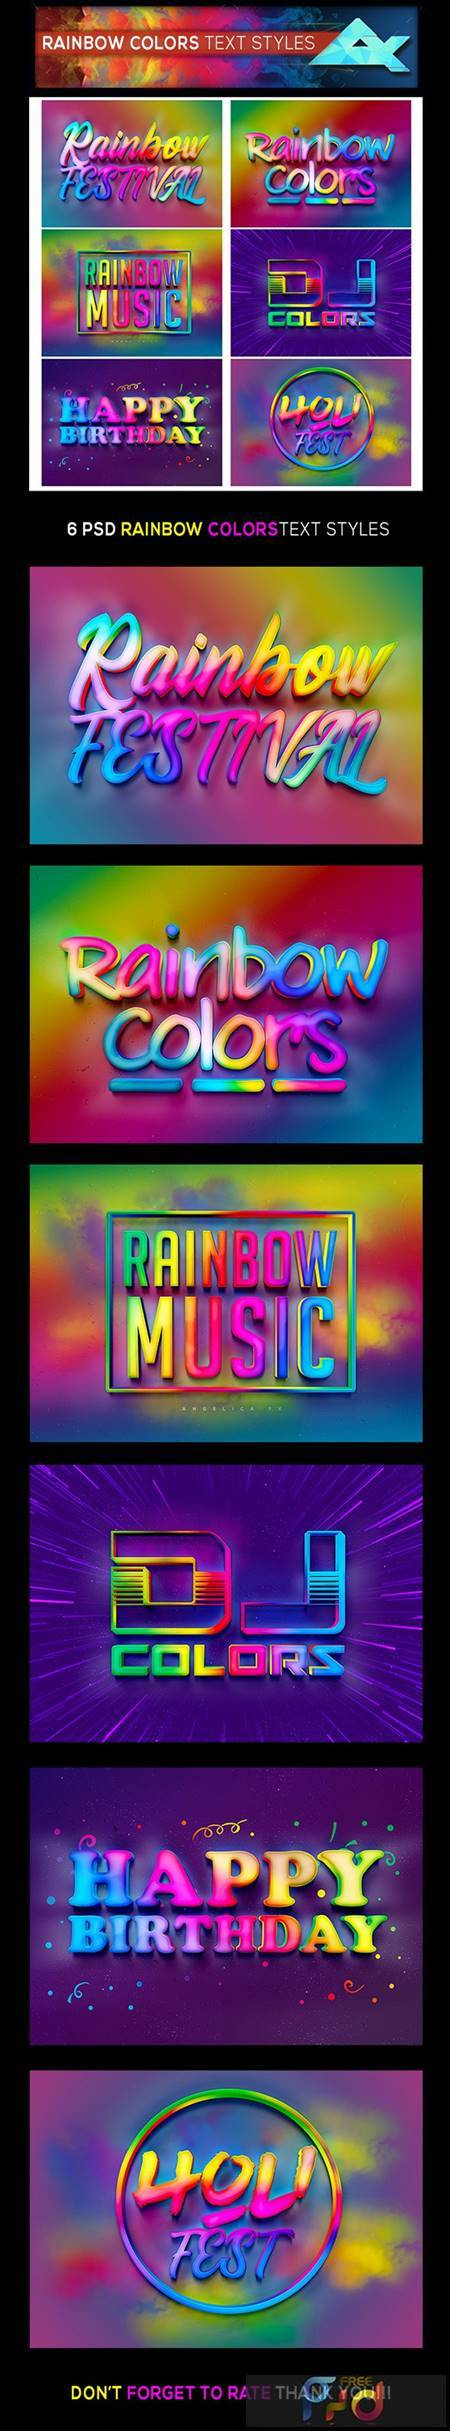 Rainbow Colors Photoshop Text Effects Styles 26378765 1